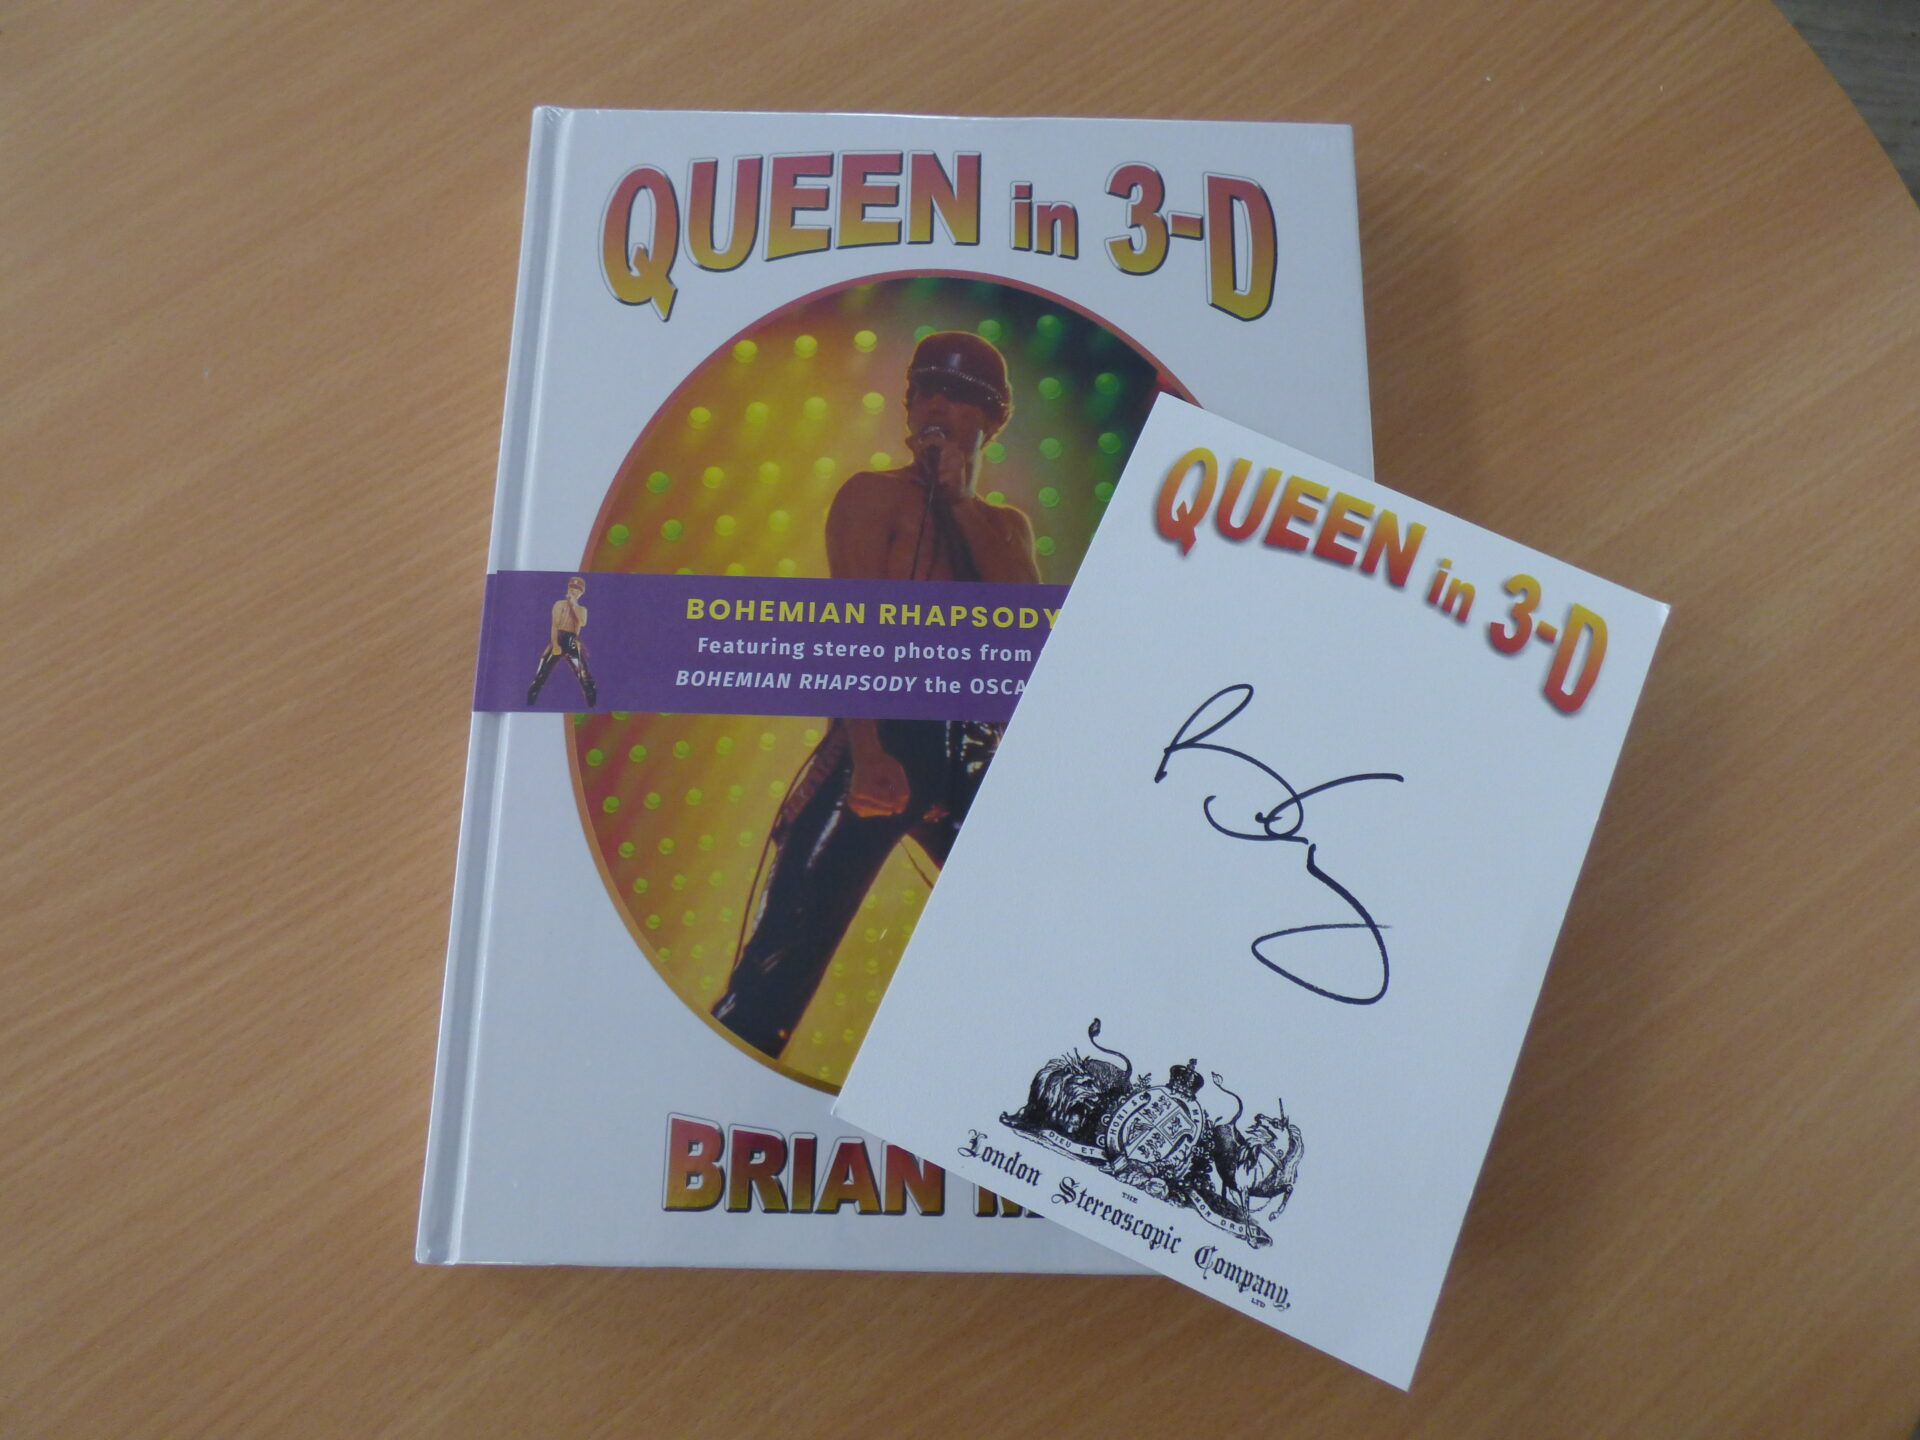 Queen in 3D book and Brian Mays signature